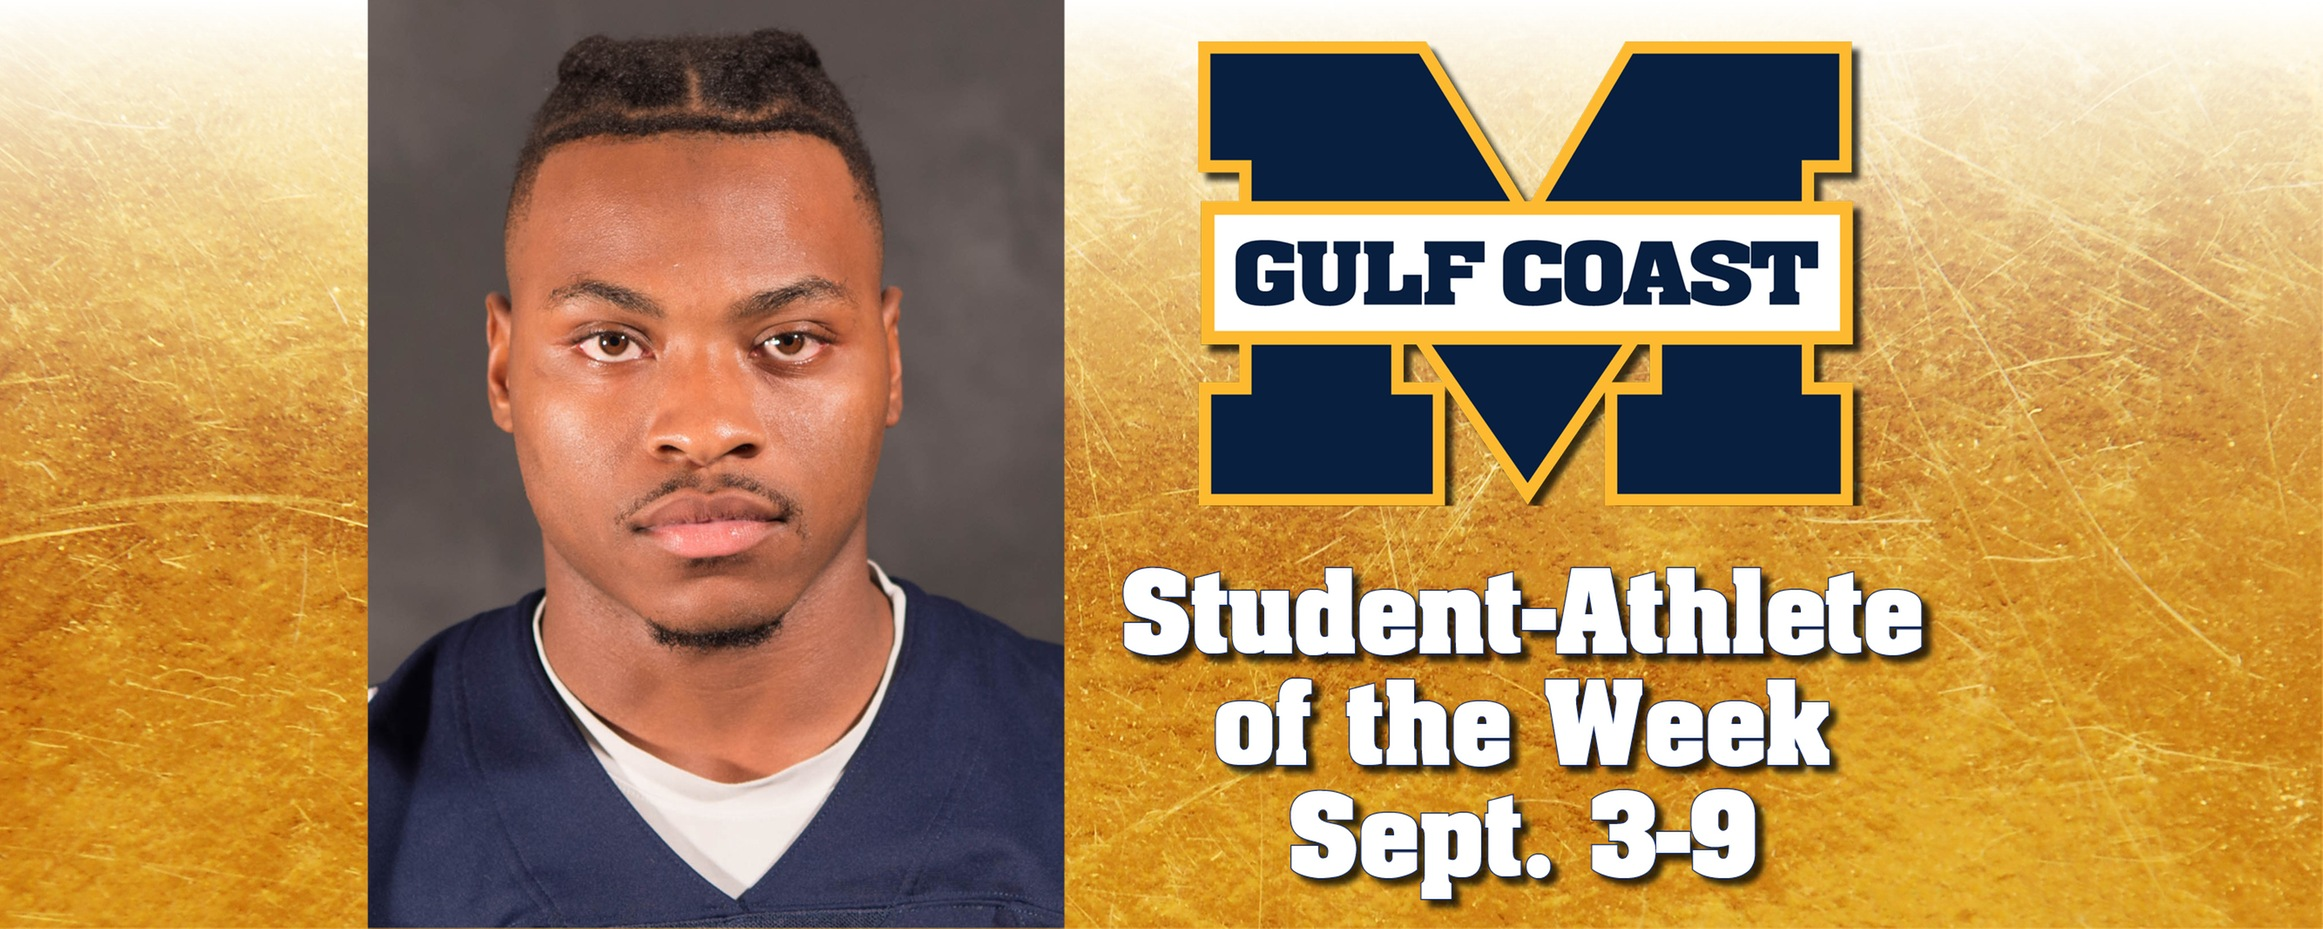 Avery named MGCCC Student-Athlete of the Week